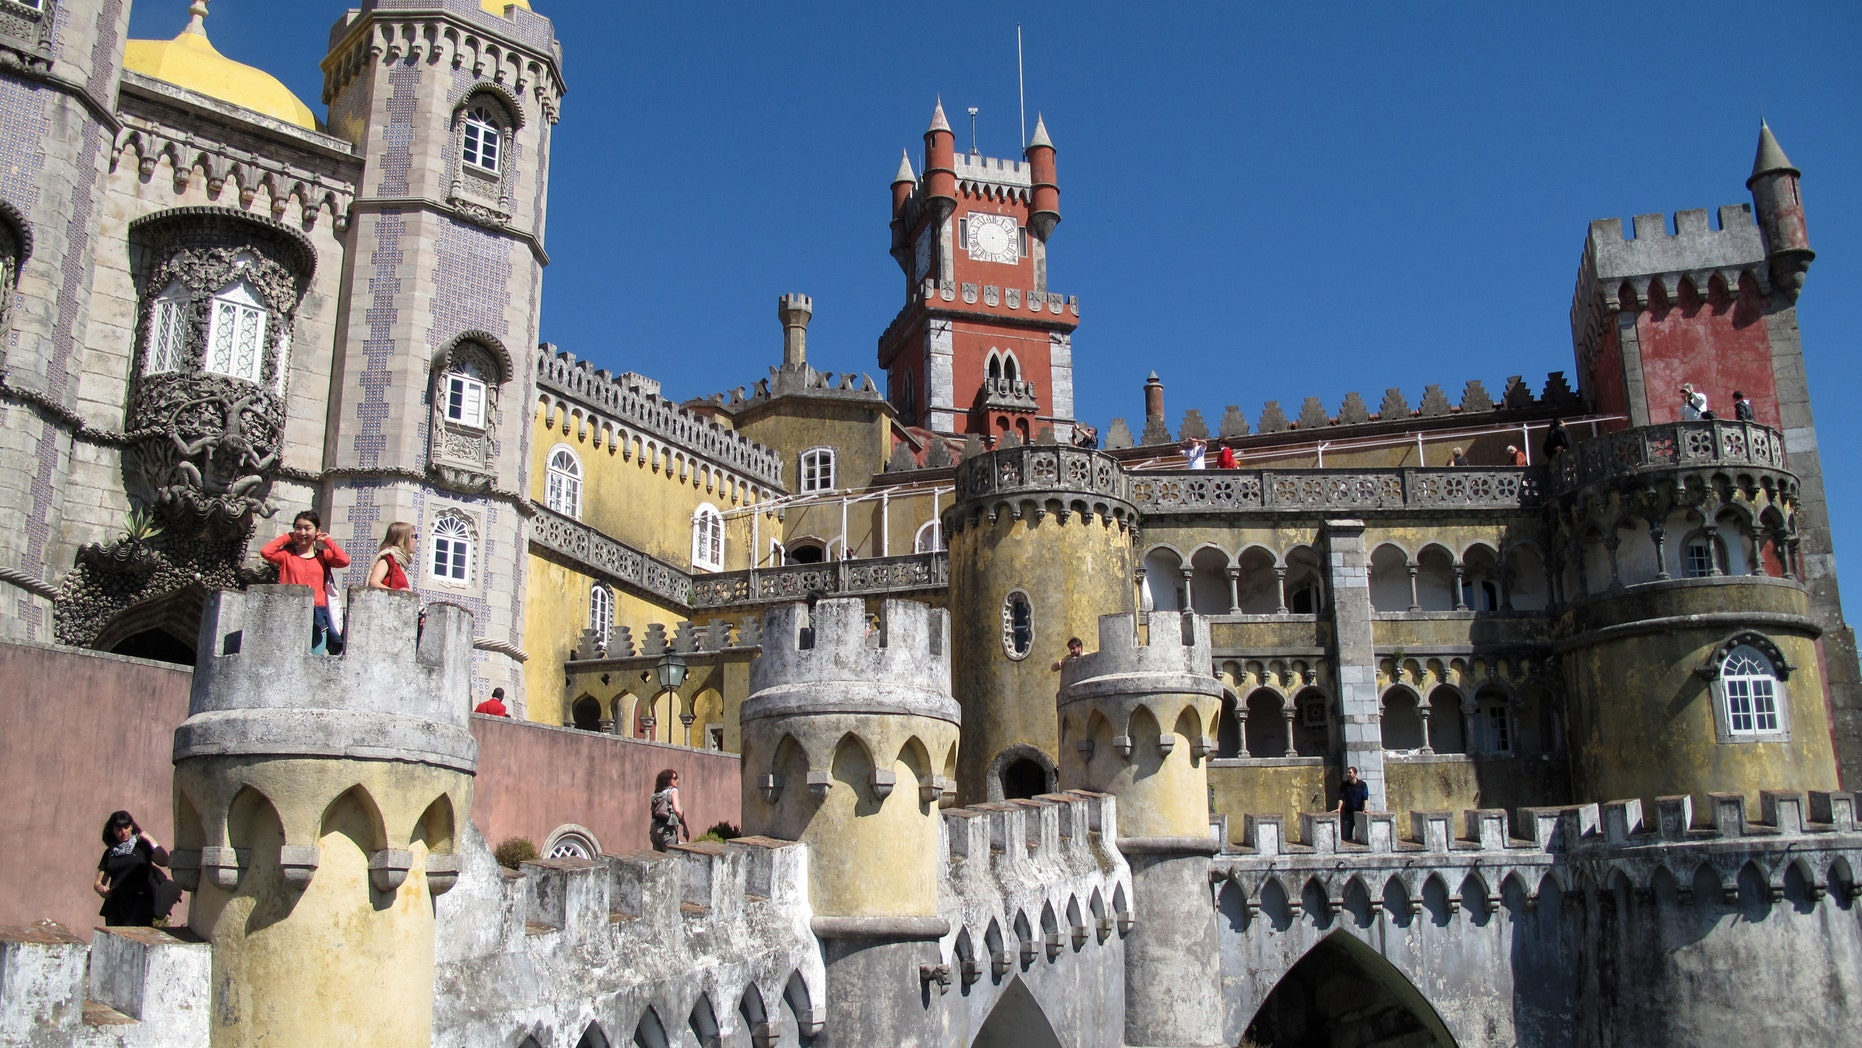 The exterior of Pena Palace in Sintra, Portugal. It's like a castle seen through a kaleidoscope, one of a number of spectacular buildings found in Sintra.